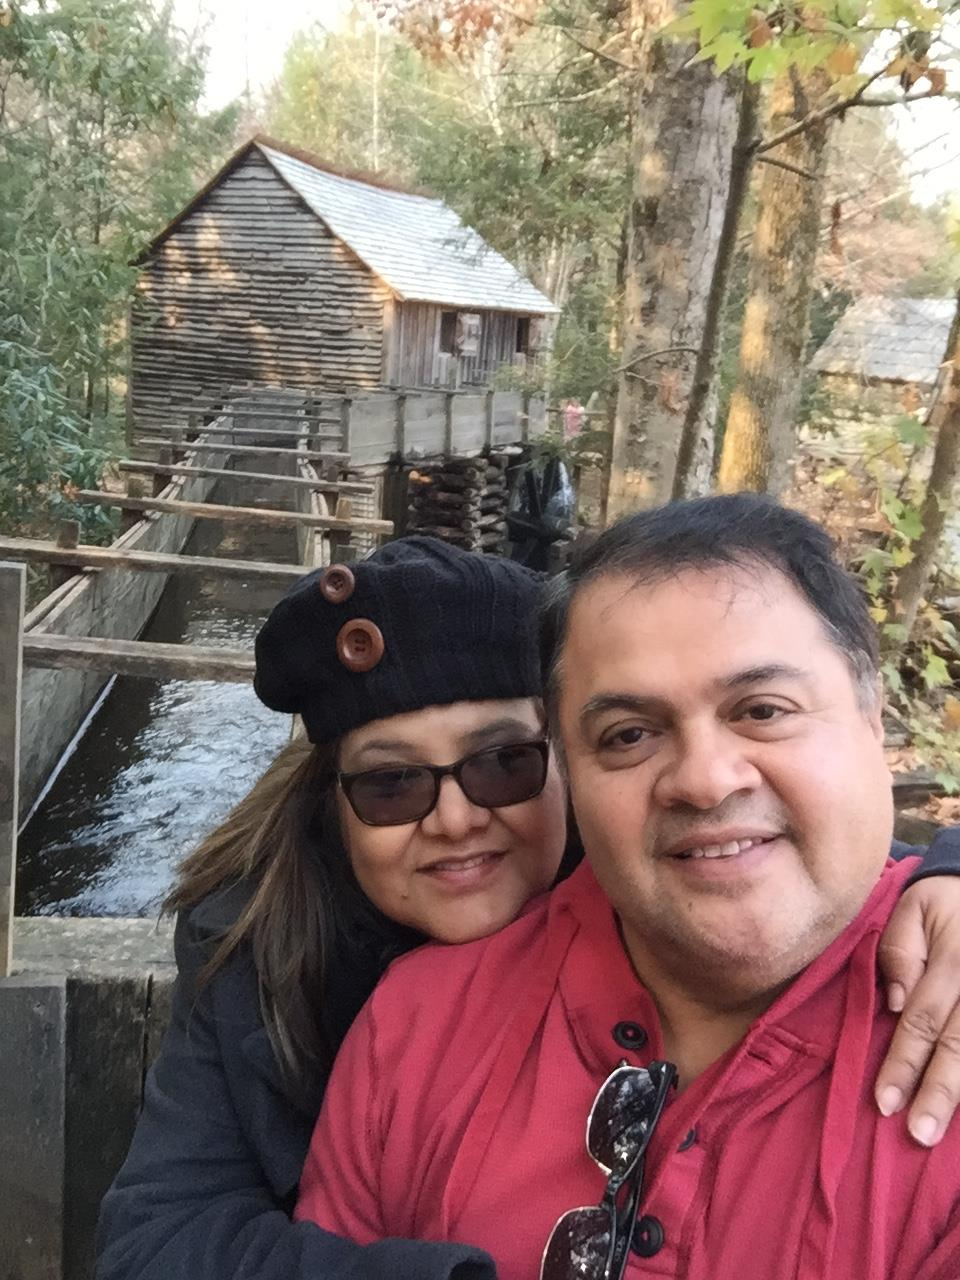 José Cedillo with his wife, Ninfa, at Great Smoky Mountains National Park in Tennessee.